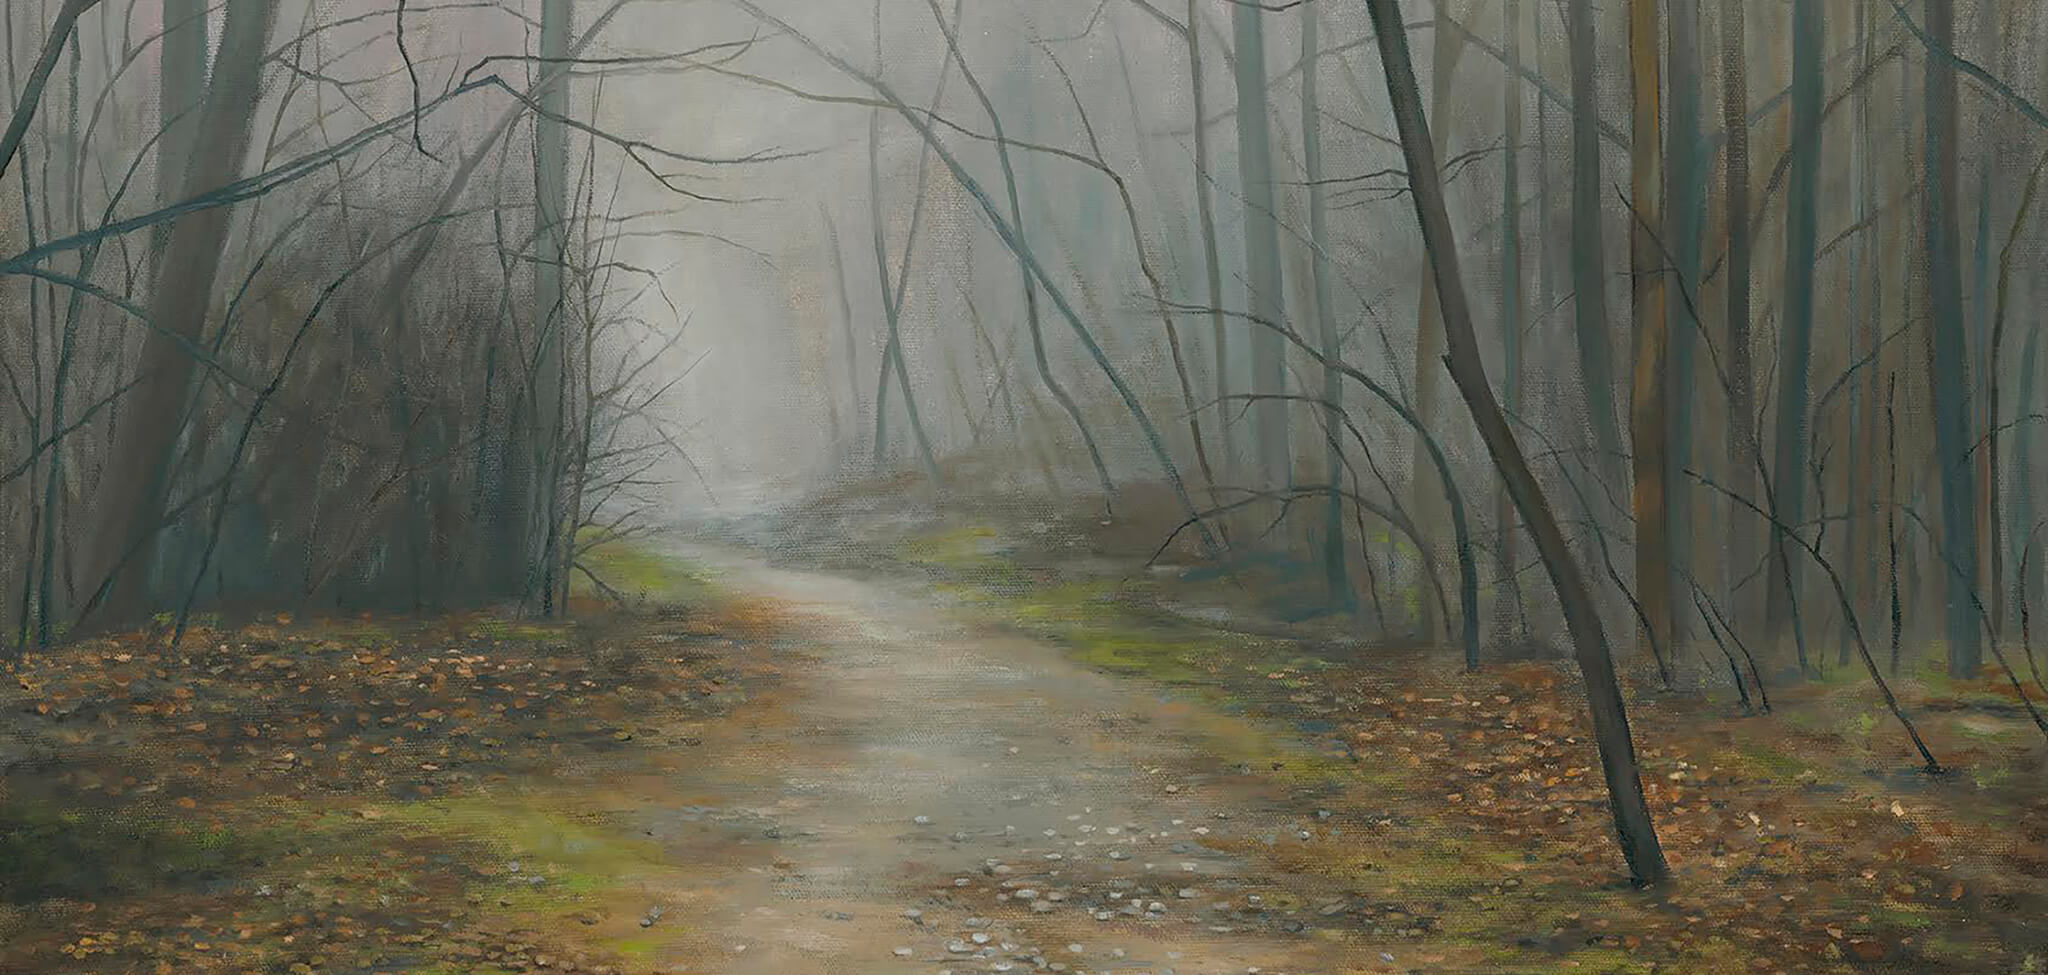 Susan Outlaw The Fog Path (detail) (2017) Acrylic on canvas WAAH 121 Exhibition Best In Show Winner